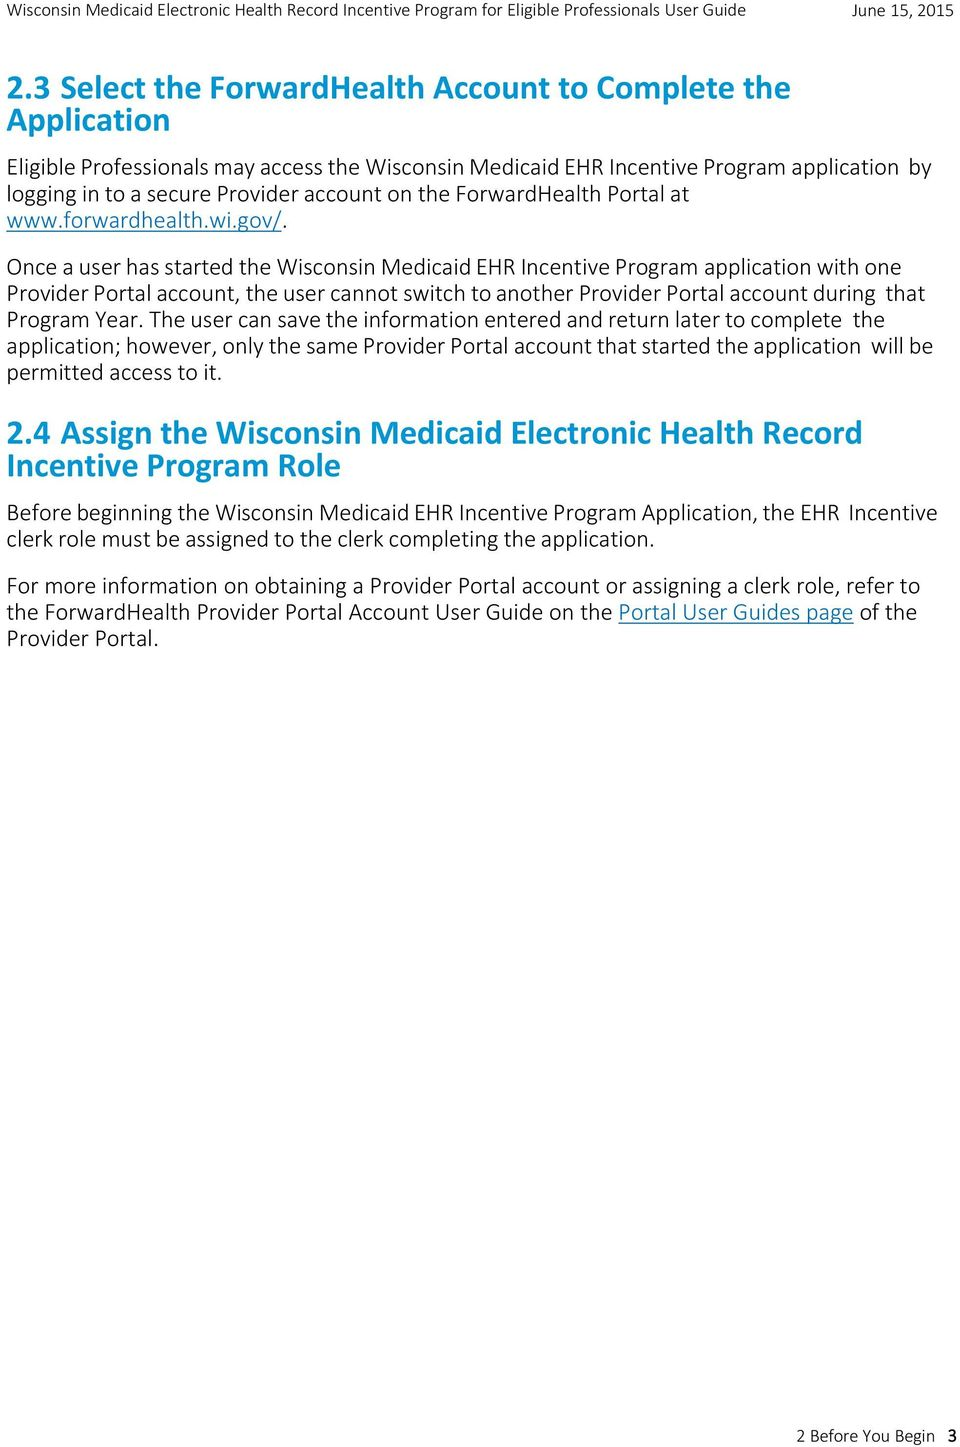 Once a user has started the Wisconsin Medicaid EHR Incentive Program application with one Provider Portal account, the user cannot switch to another Provider Portal account during that Program Year.